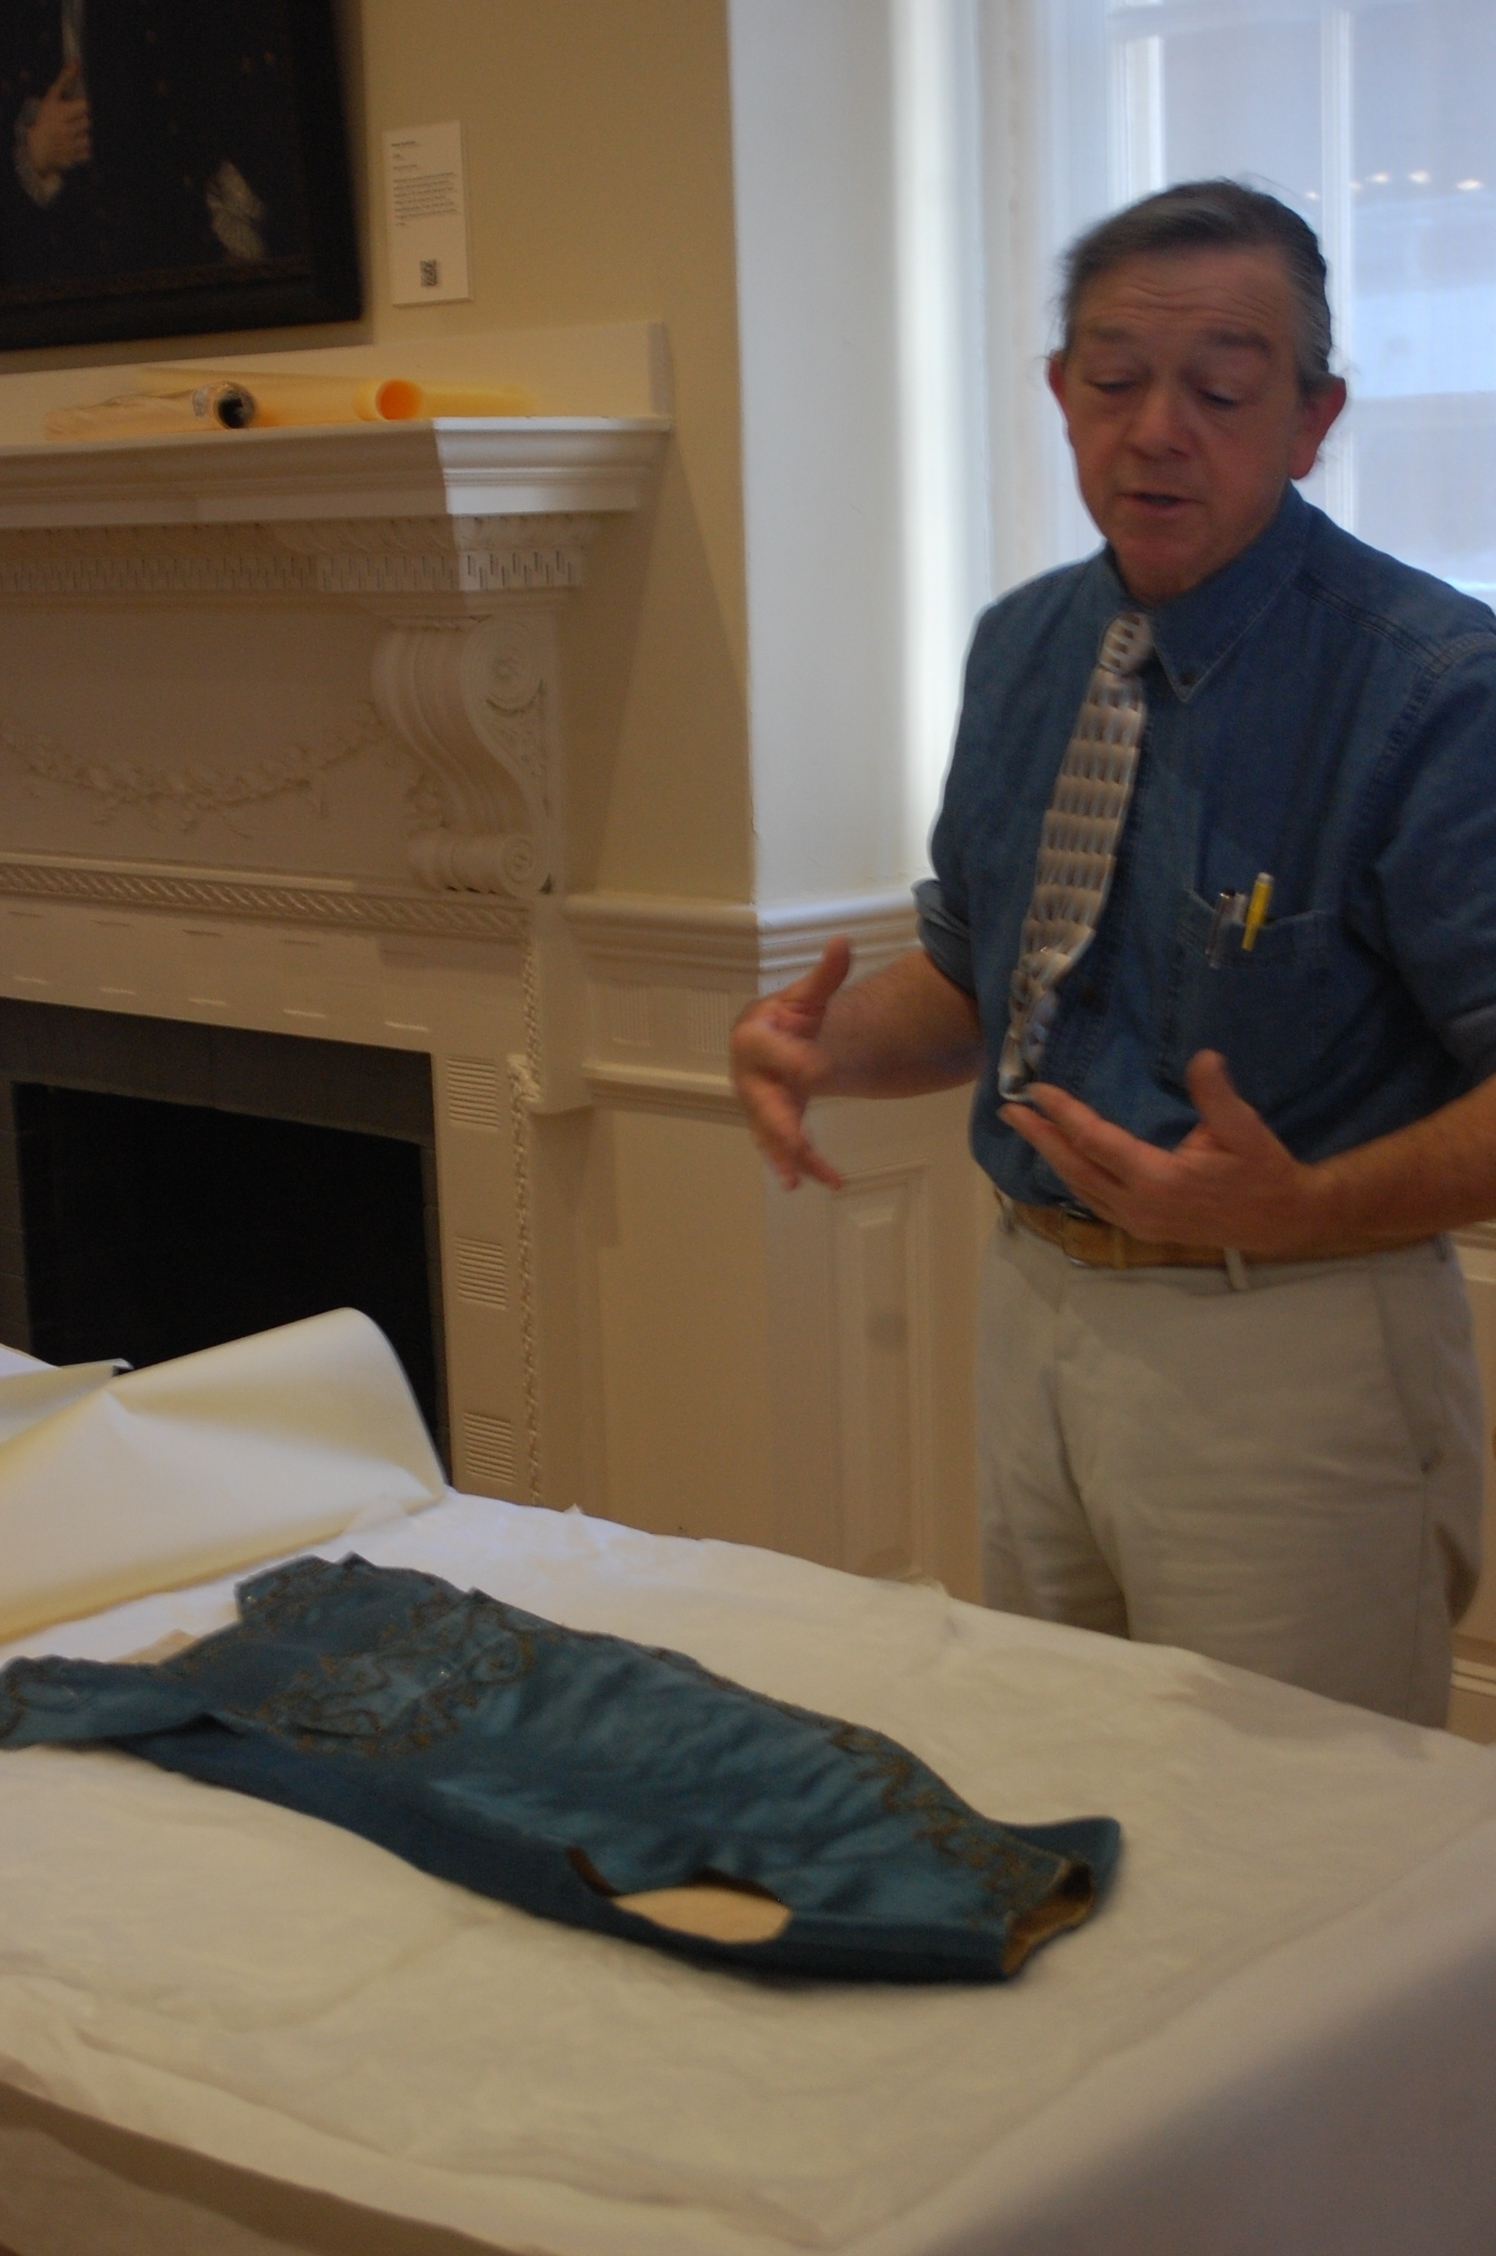 Throughout the process, Henry answered questions from visitors and staff about the garments and how they were originally made, as well as questions about what his process would be when he constructs the reproductions.